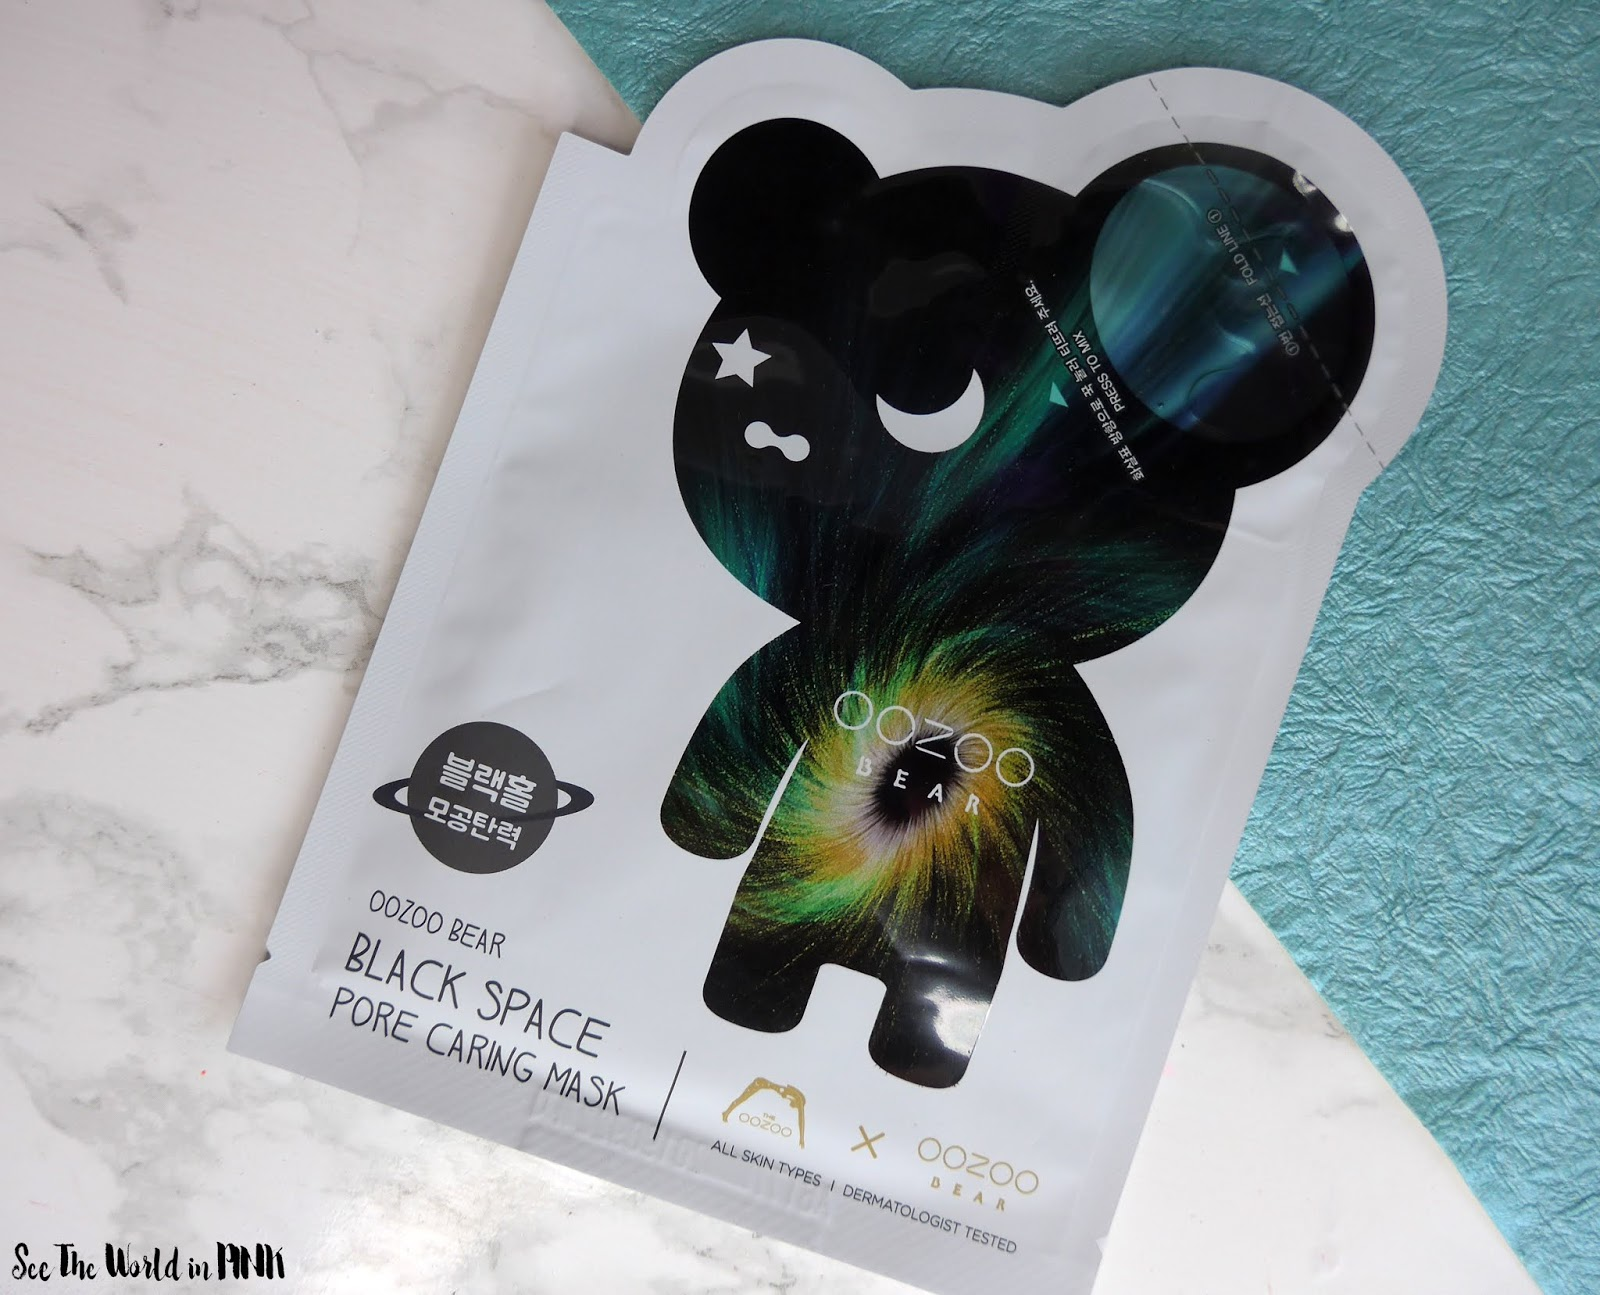 Mask Review - The OOZOO Bear Black Space Pore Caring Mask